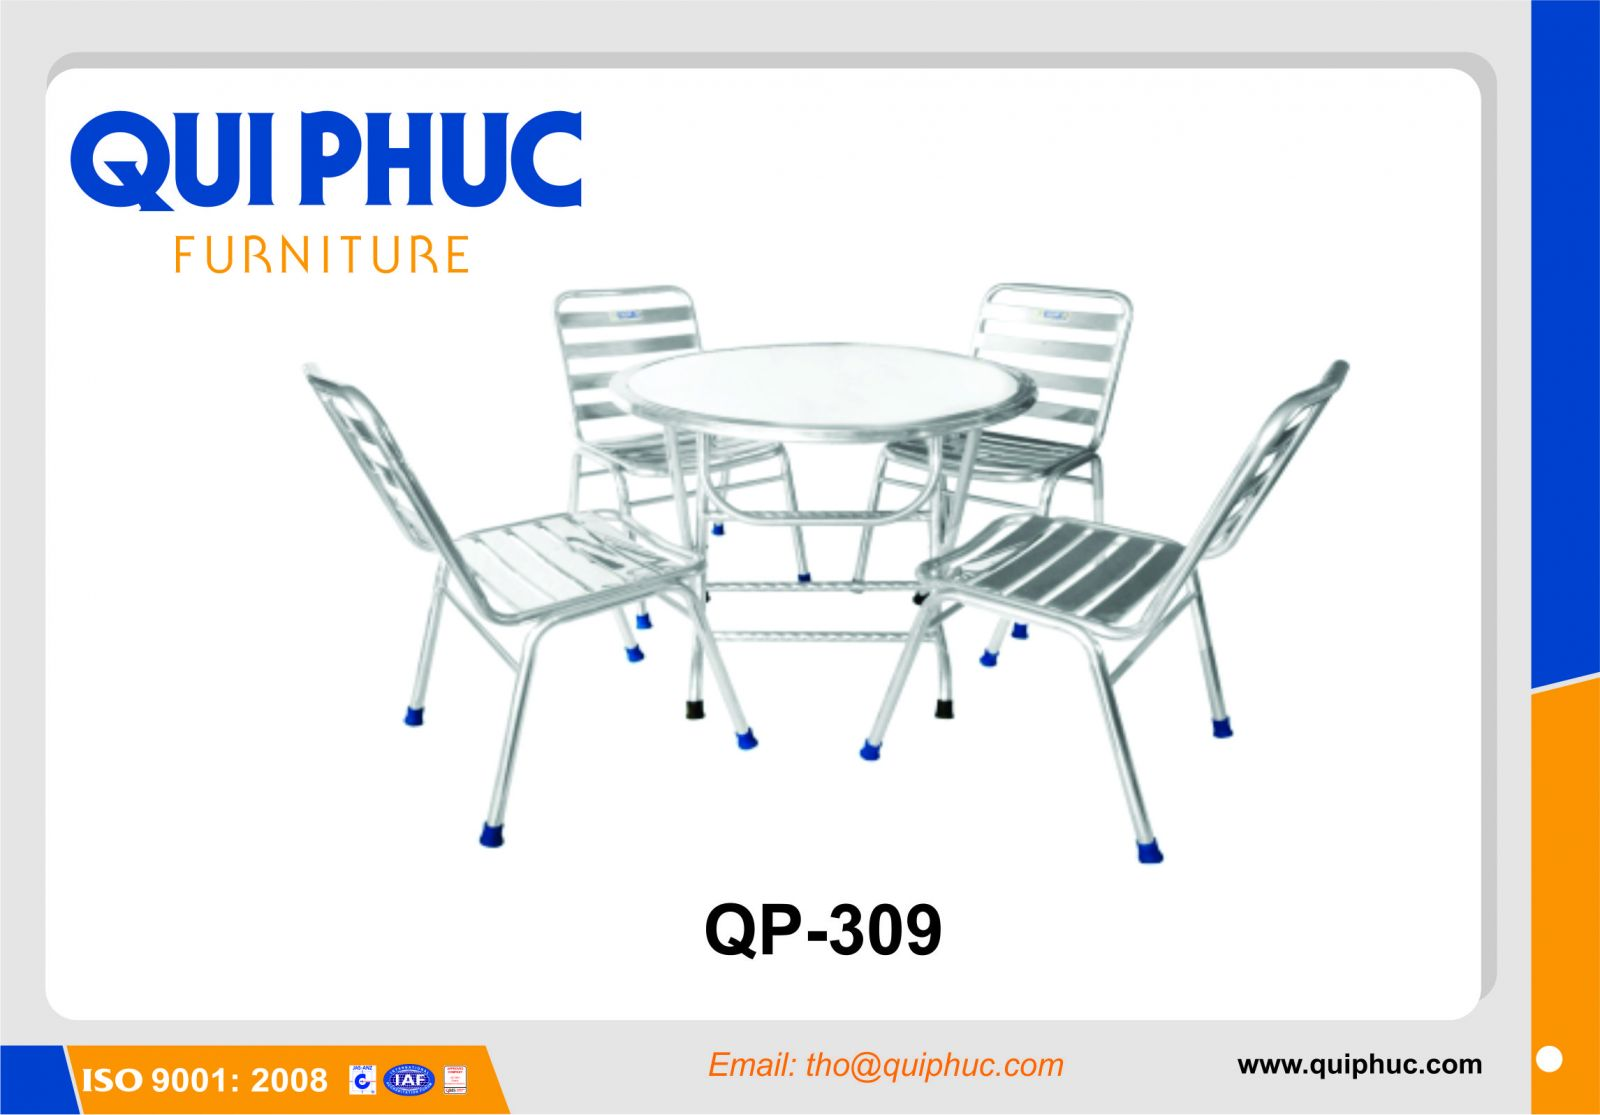 stainless steel chair hsn code spandex covers for lifetime folding chairs qp 309 view organization quality standards